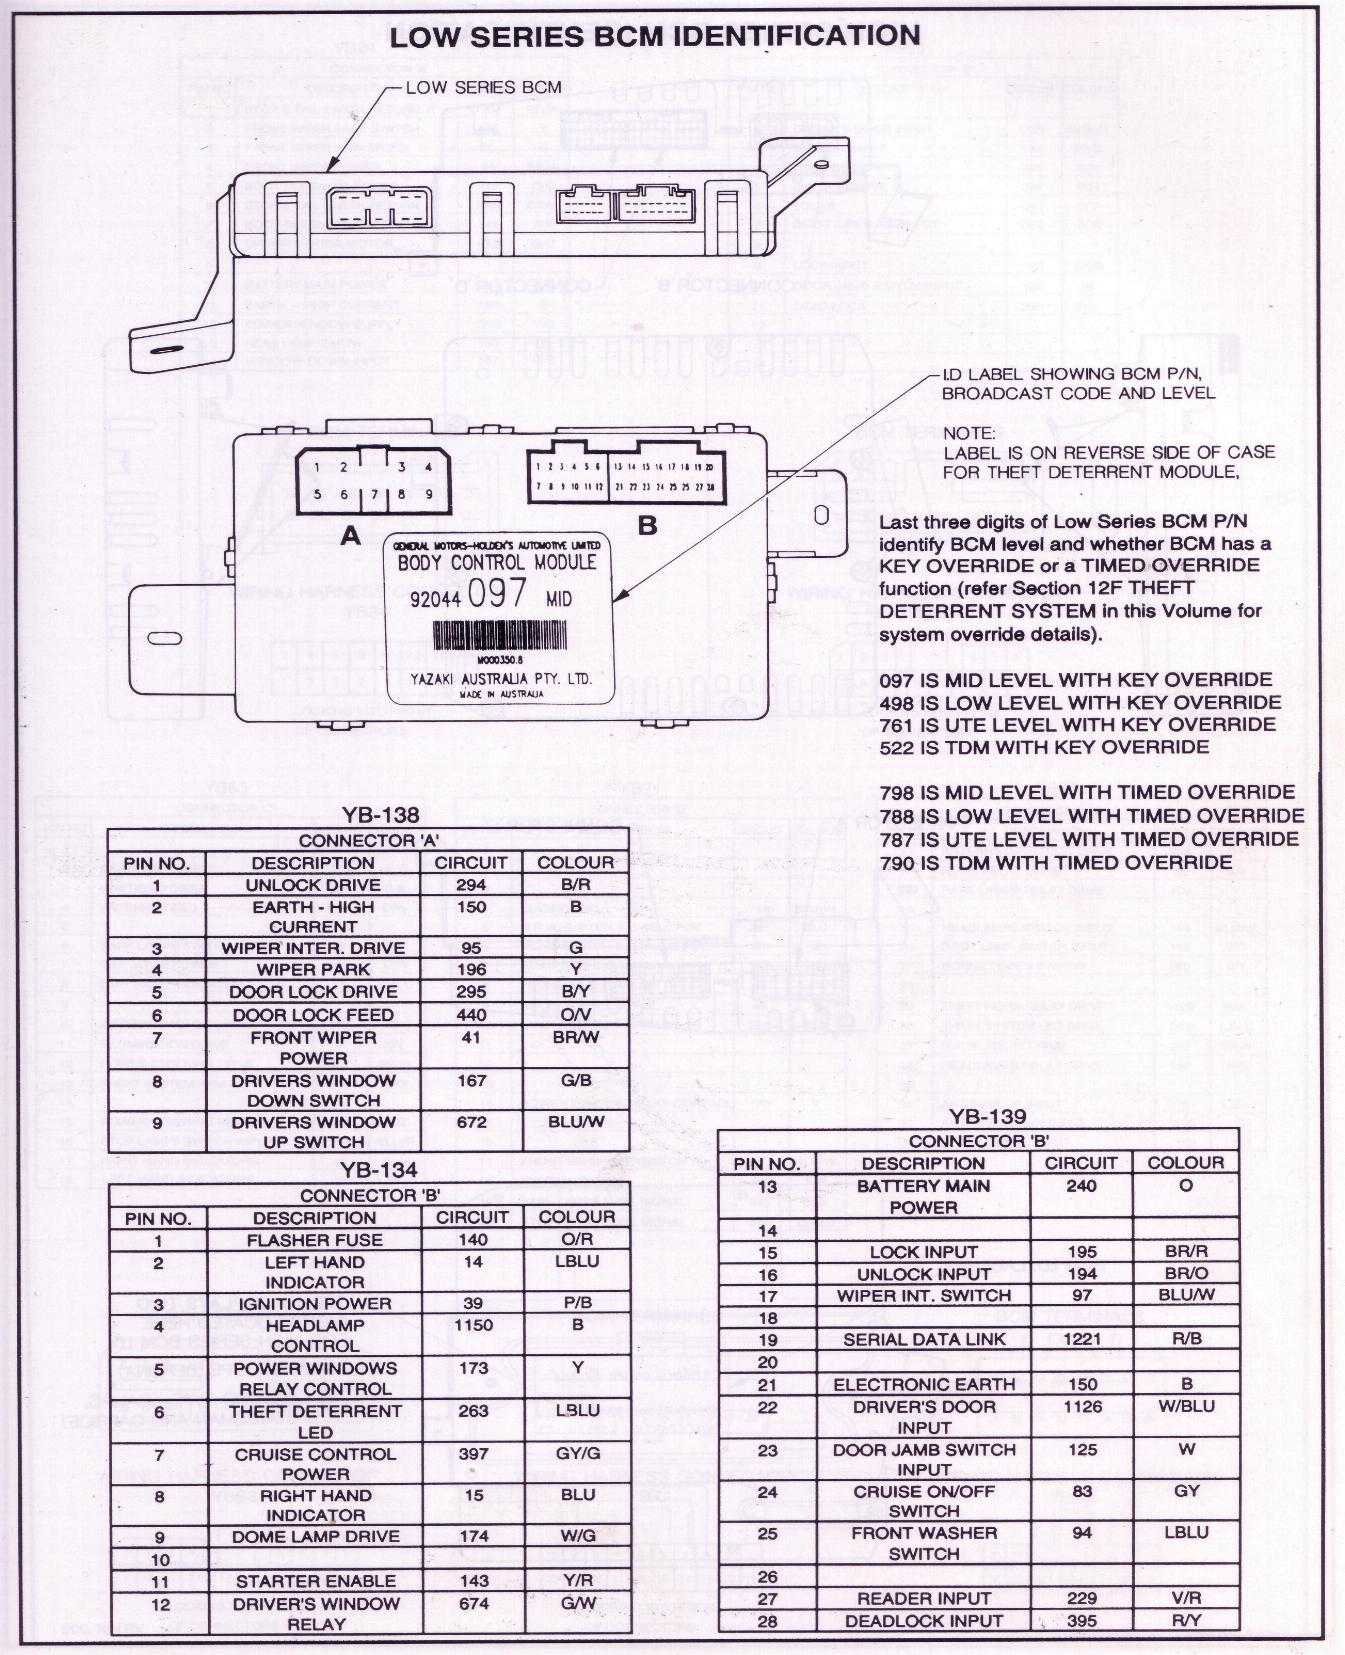 vr body control just commodores vr commodore bcm wiring diagram at bayanpartner.co